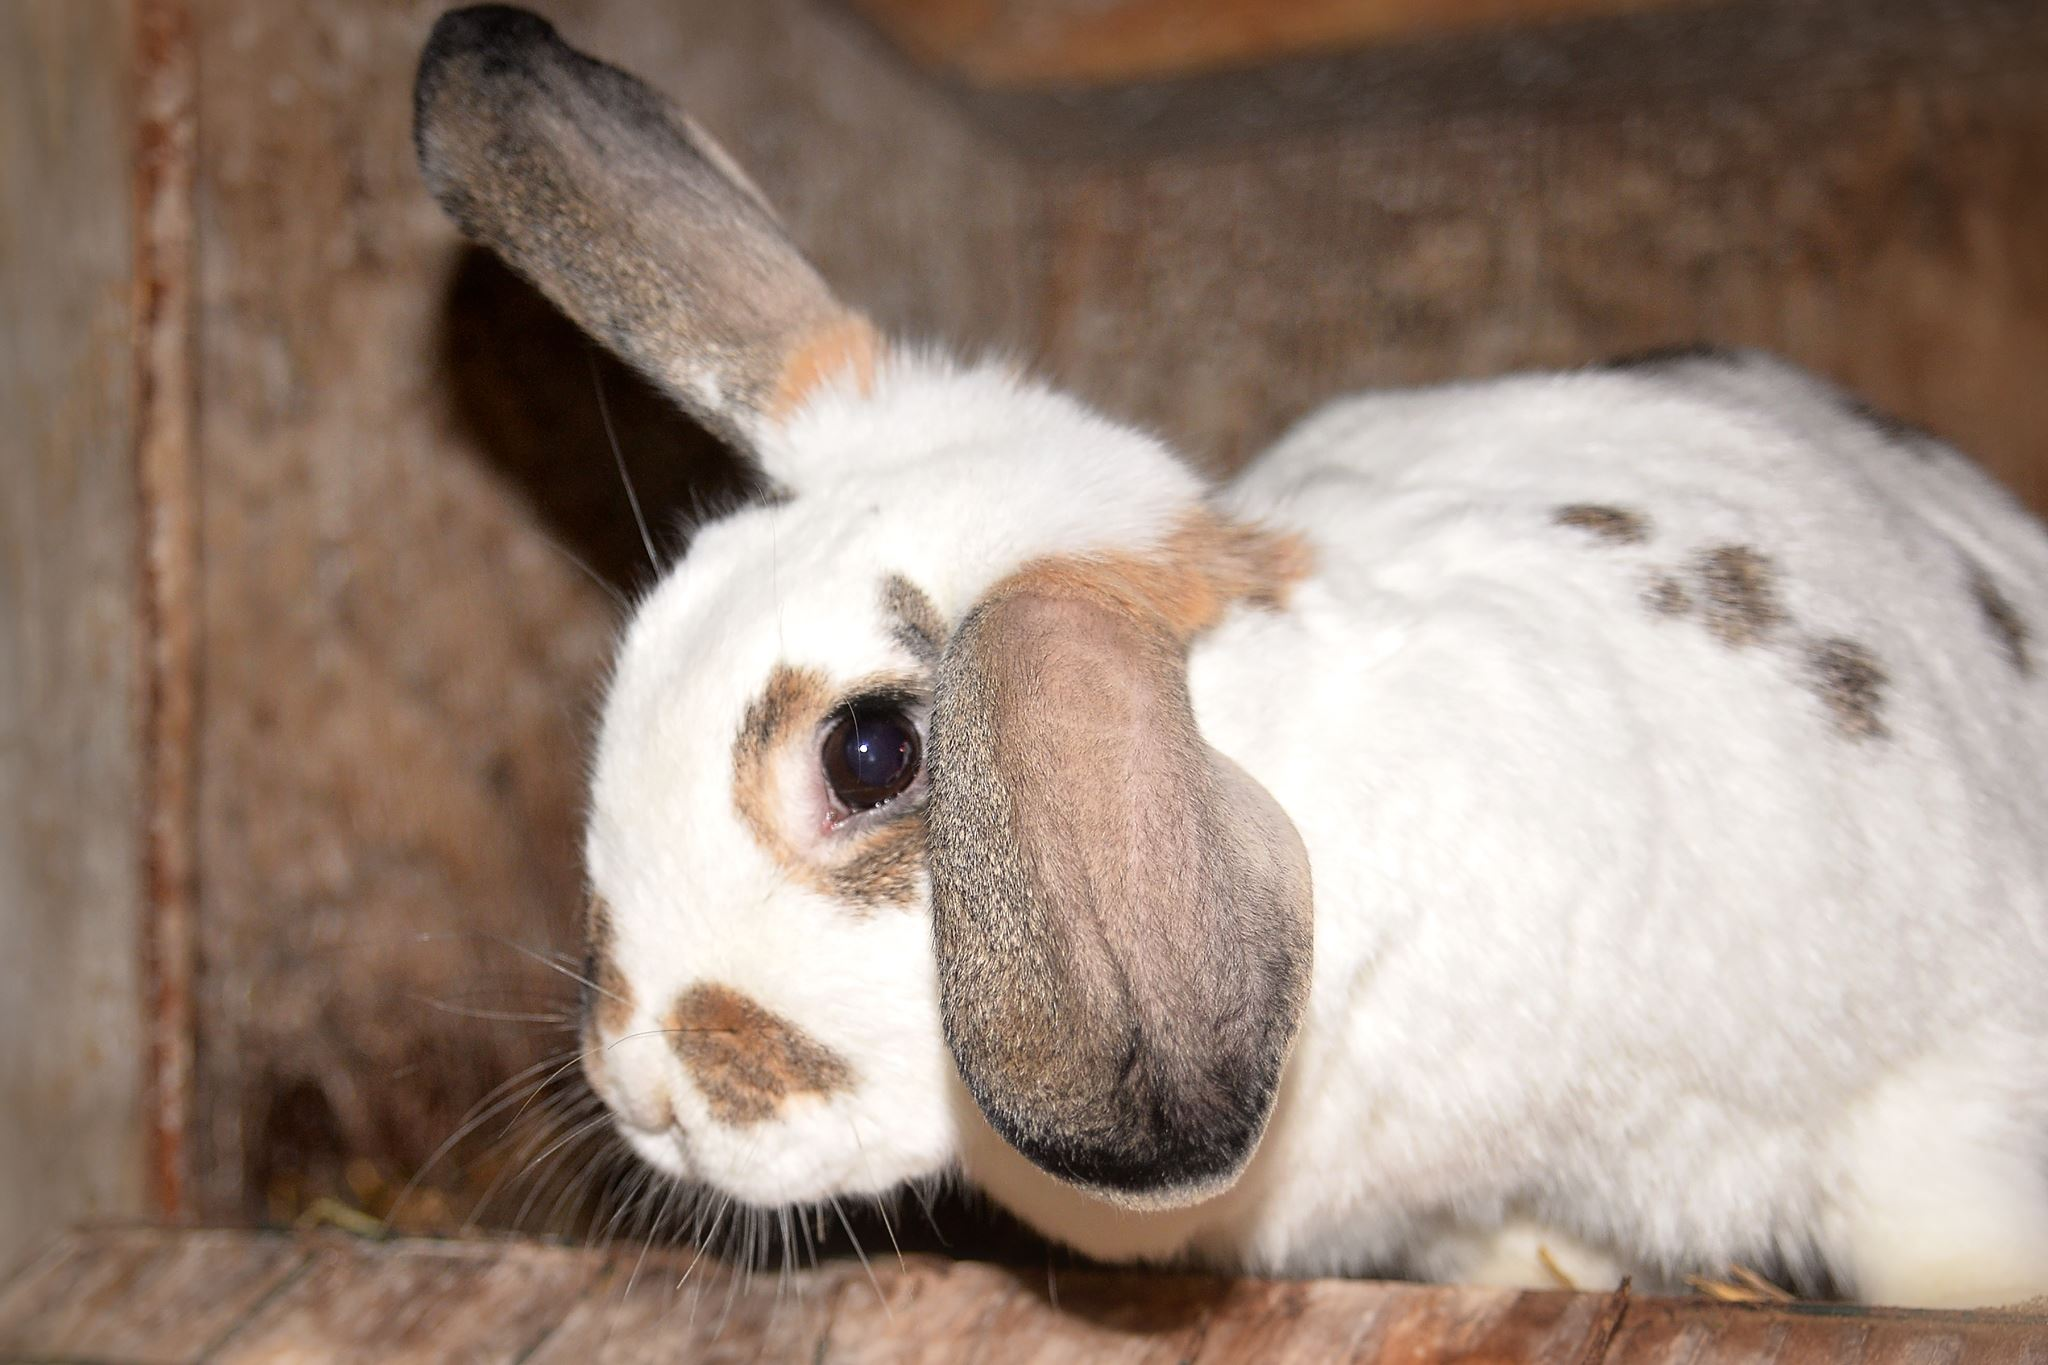 Image of a white bunny